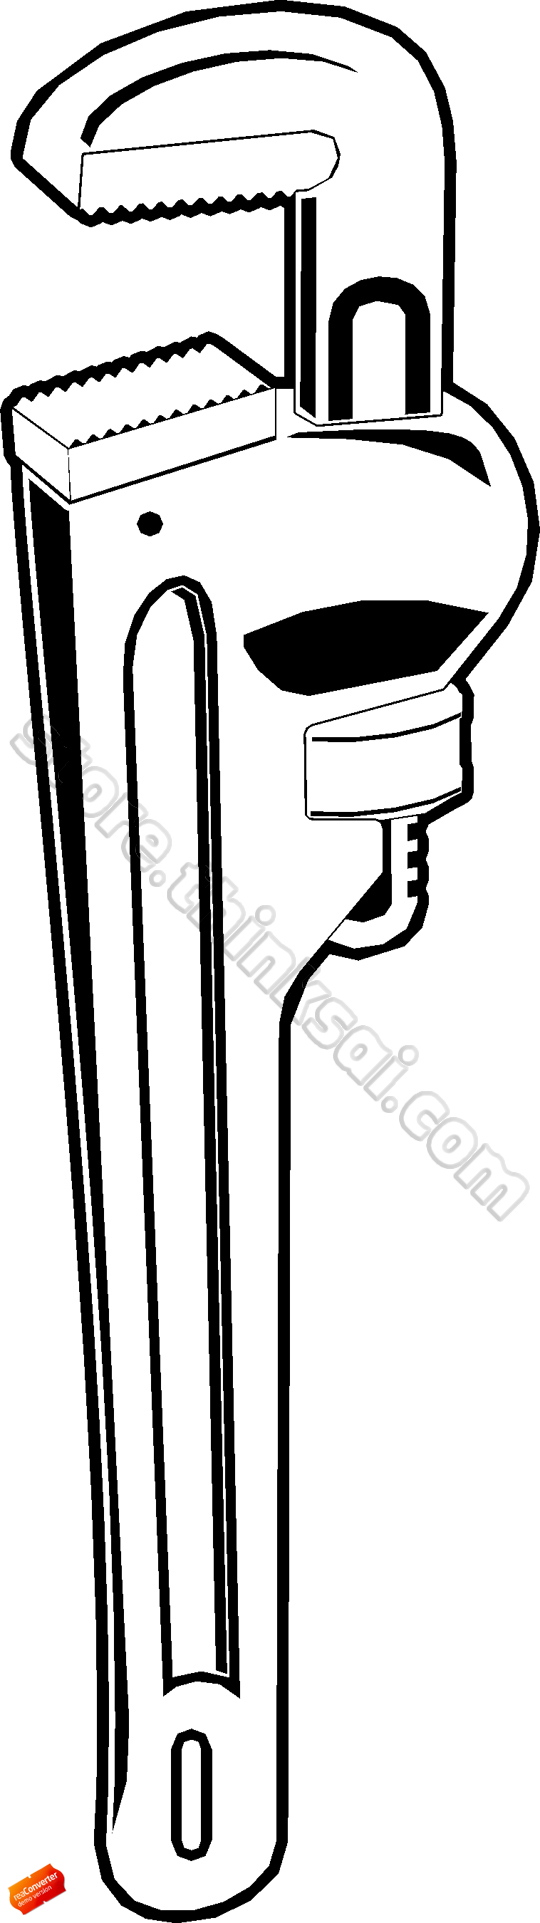 Wrench Clip Art Tools Wrench 13 Pipe Wrench